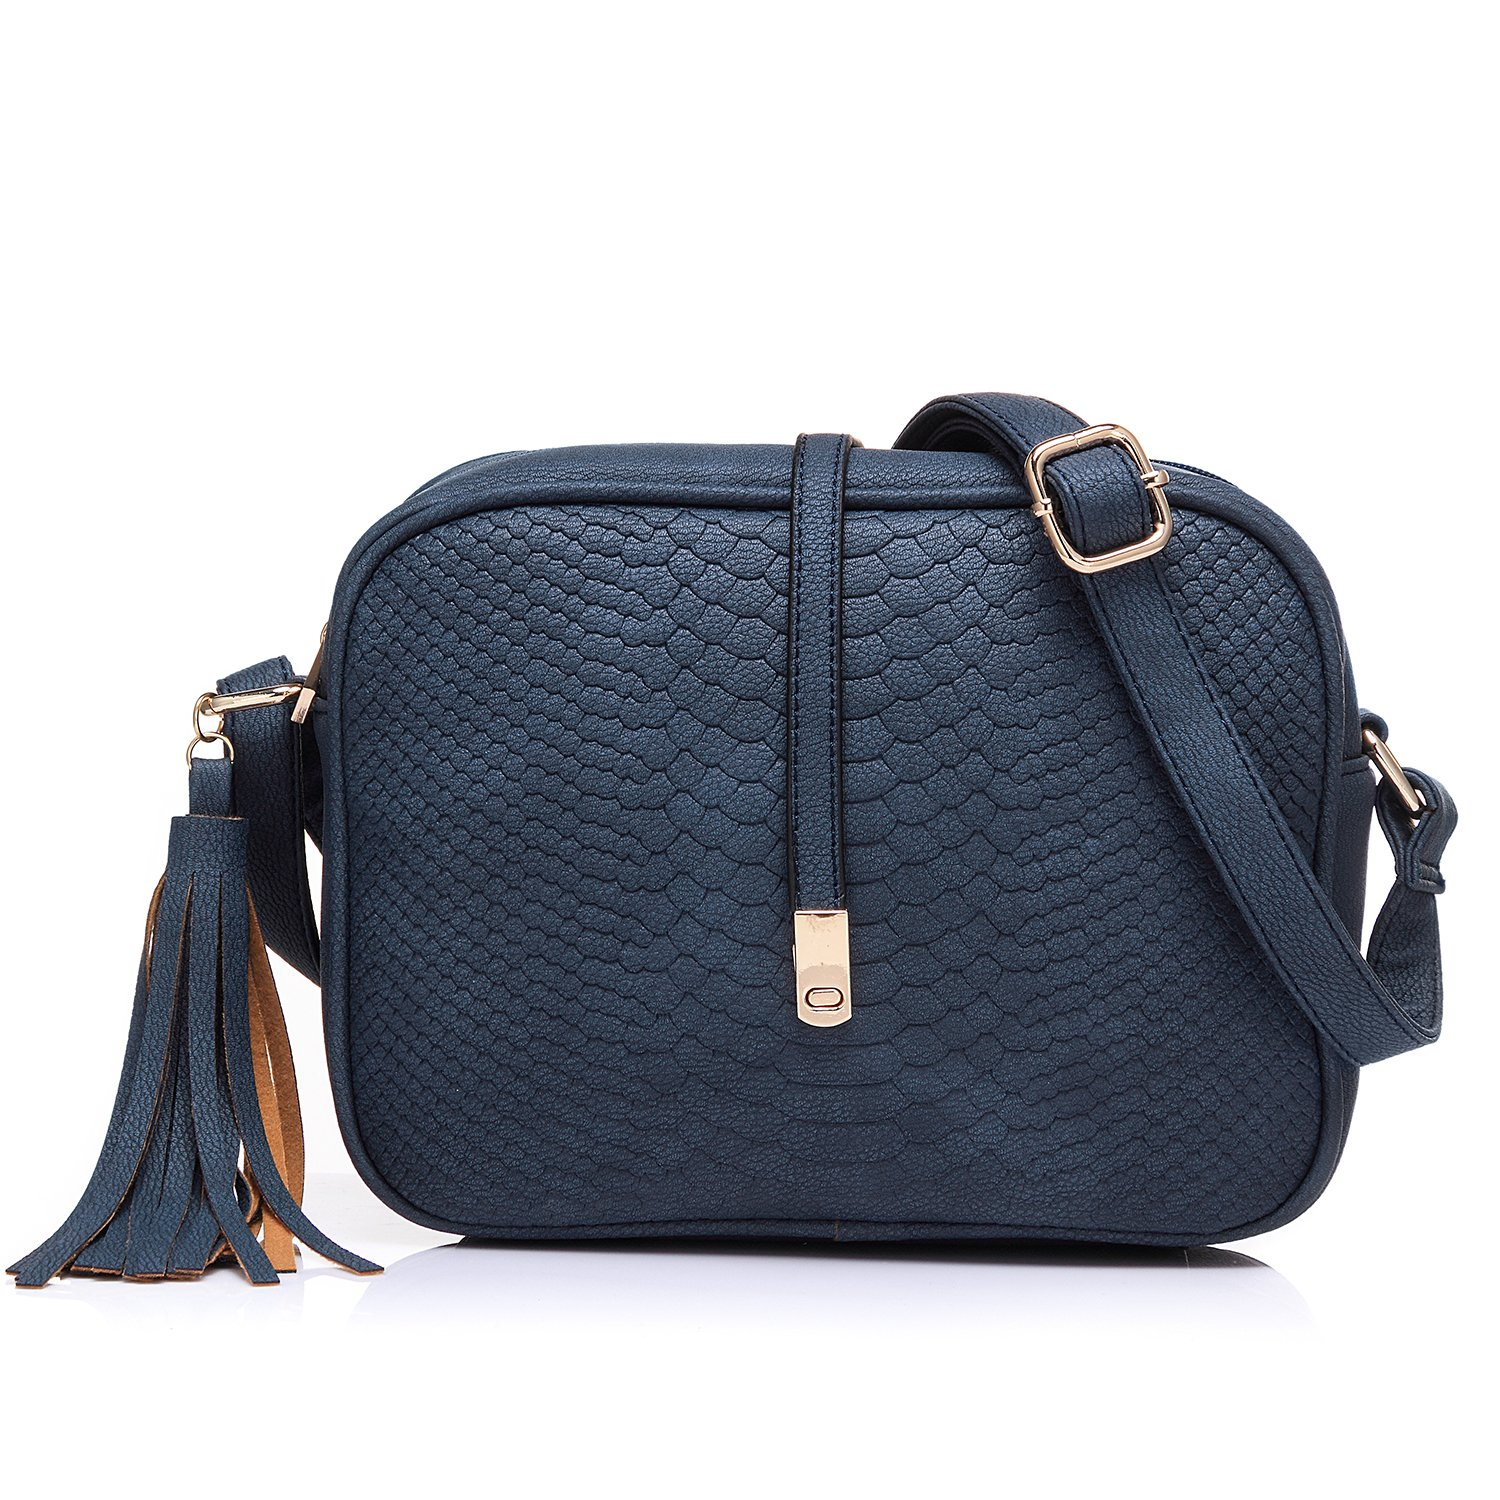 9fe1d0eca4679 Small Crossbody Bags for Women Ladies Faux Leather Mini Shoulder Bag with  Tassel Purse Blue: Handbags: Amazon.com